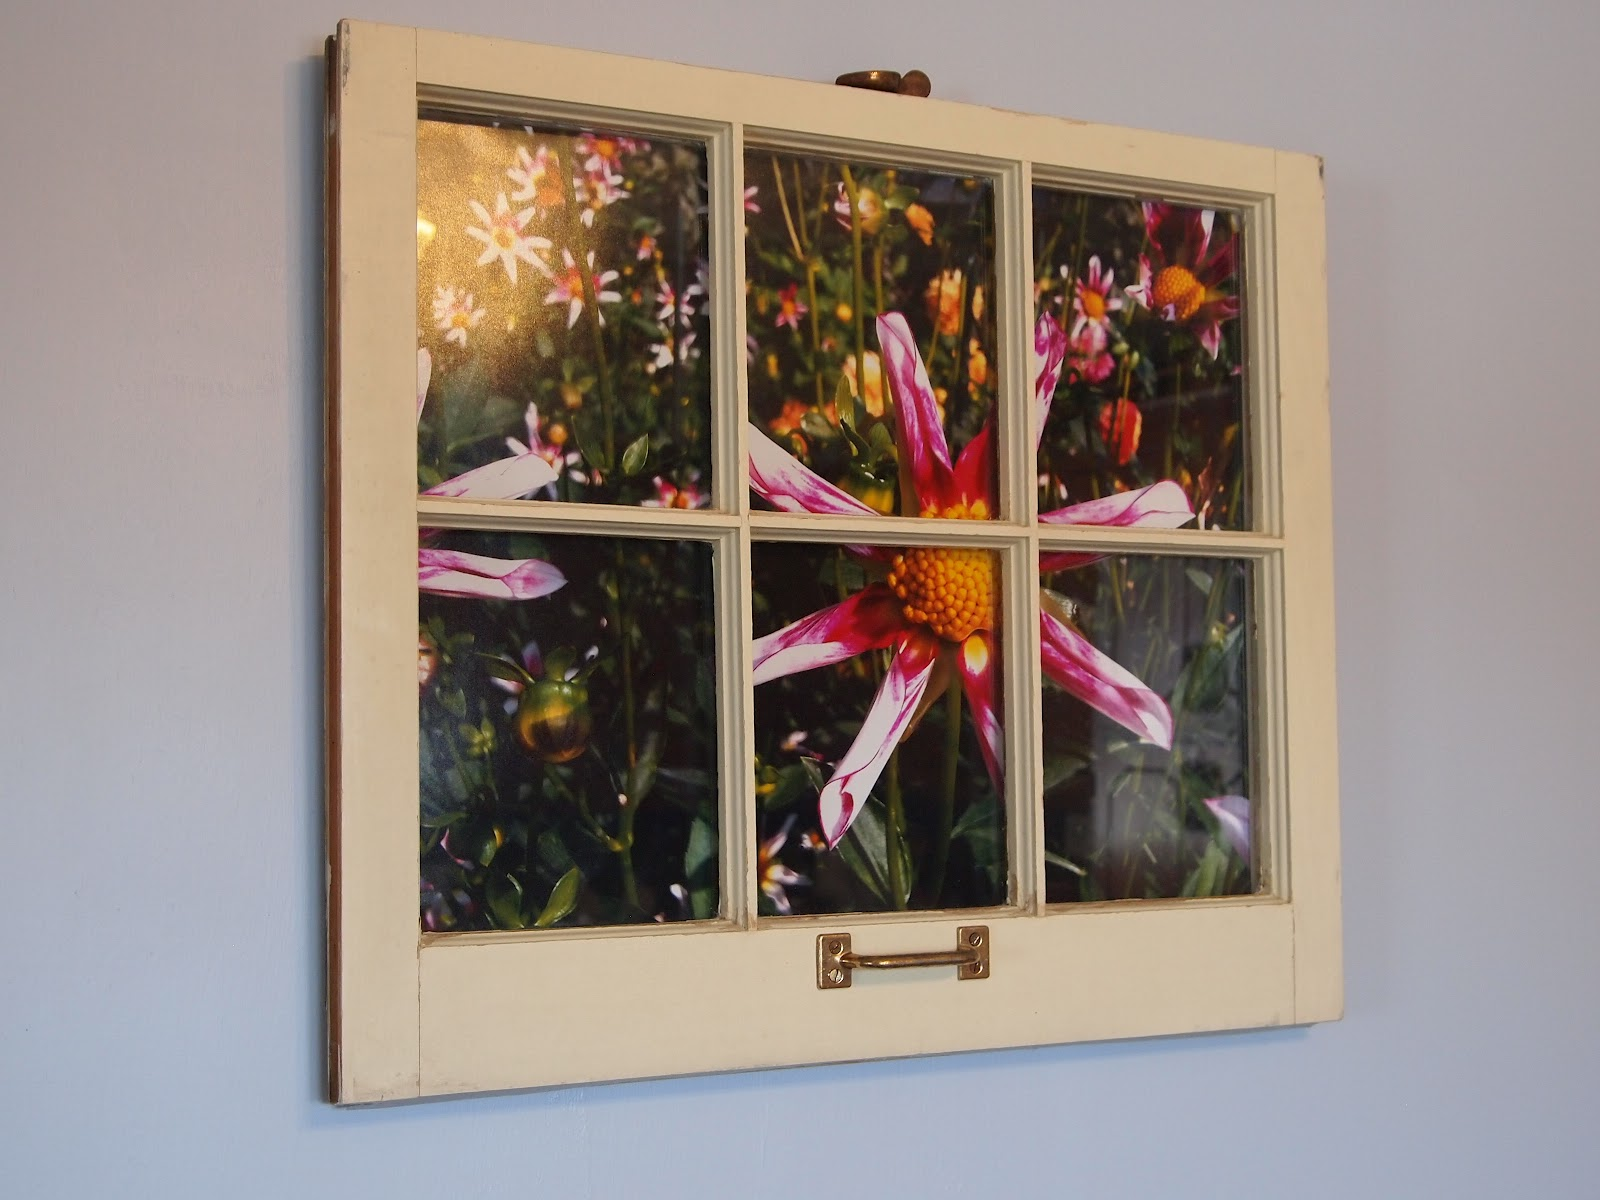 Craft room confidential recycled window picture frame for Recycled window frames